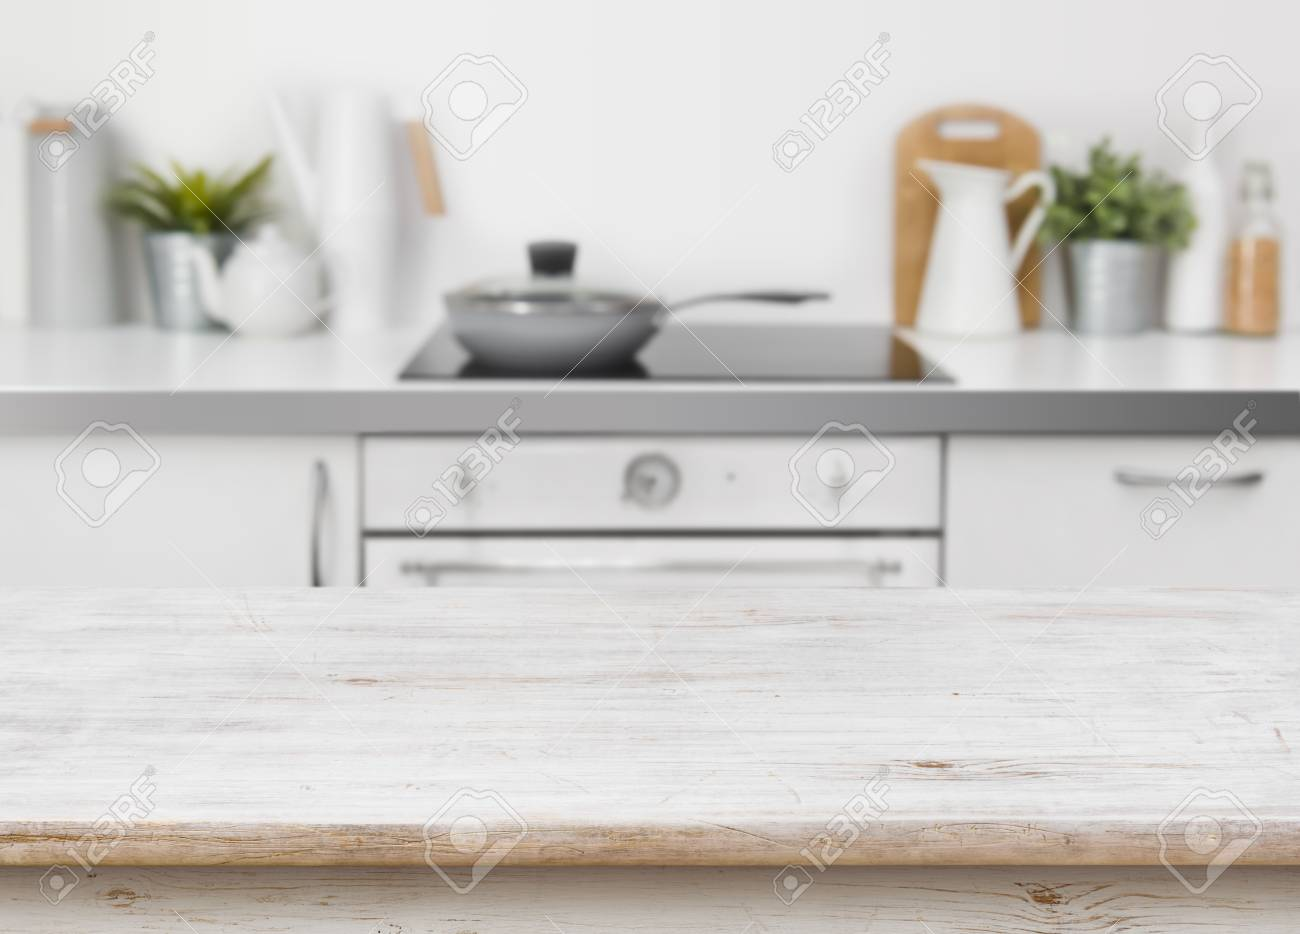 Bleached Wooden Texture Table On Defocused Kitchen Bench Interior  Background Stock Photo   74564652